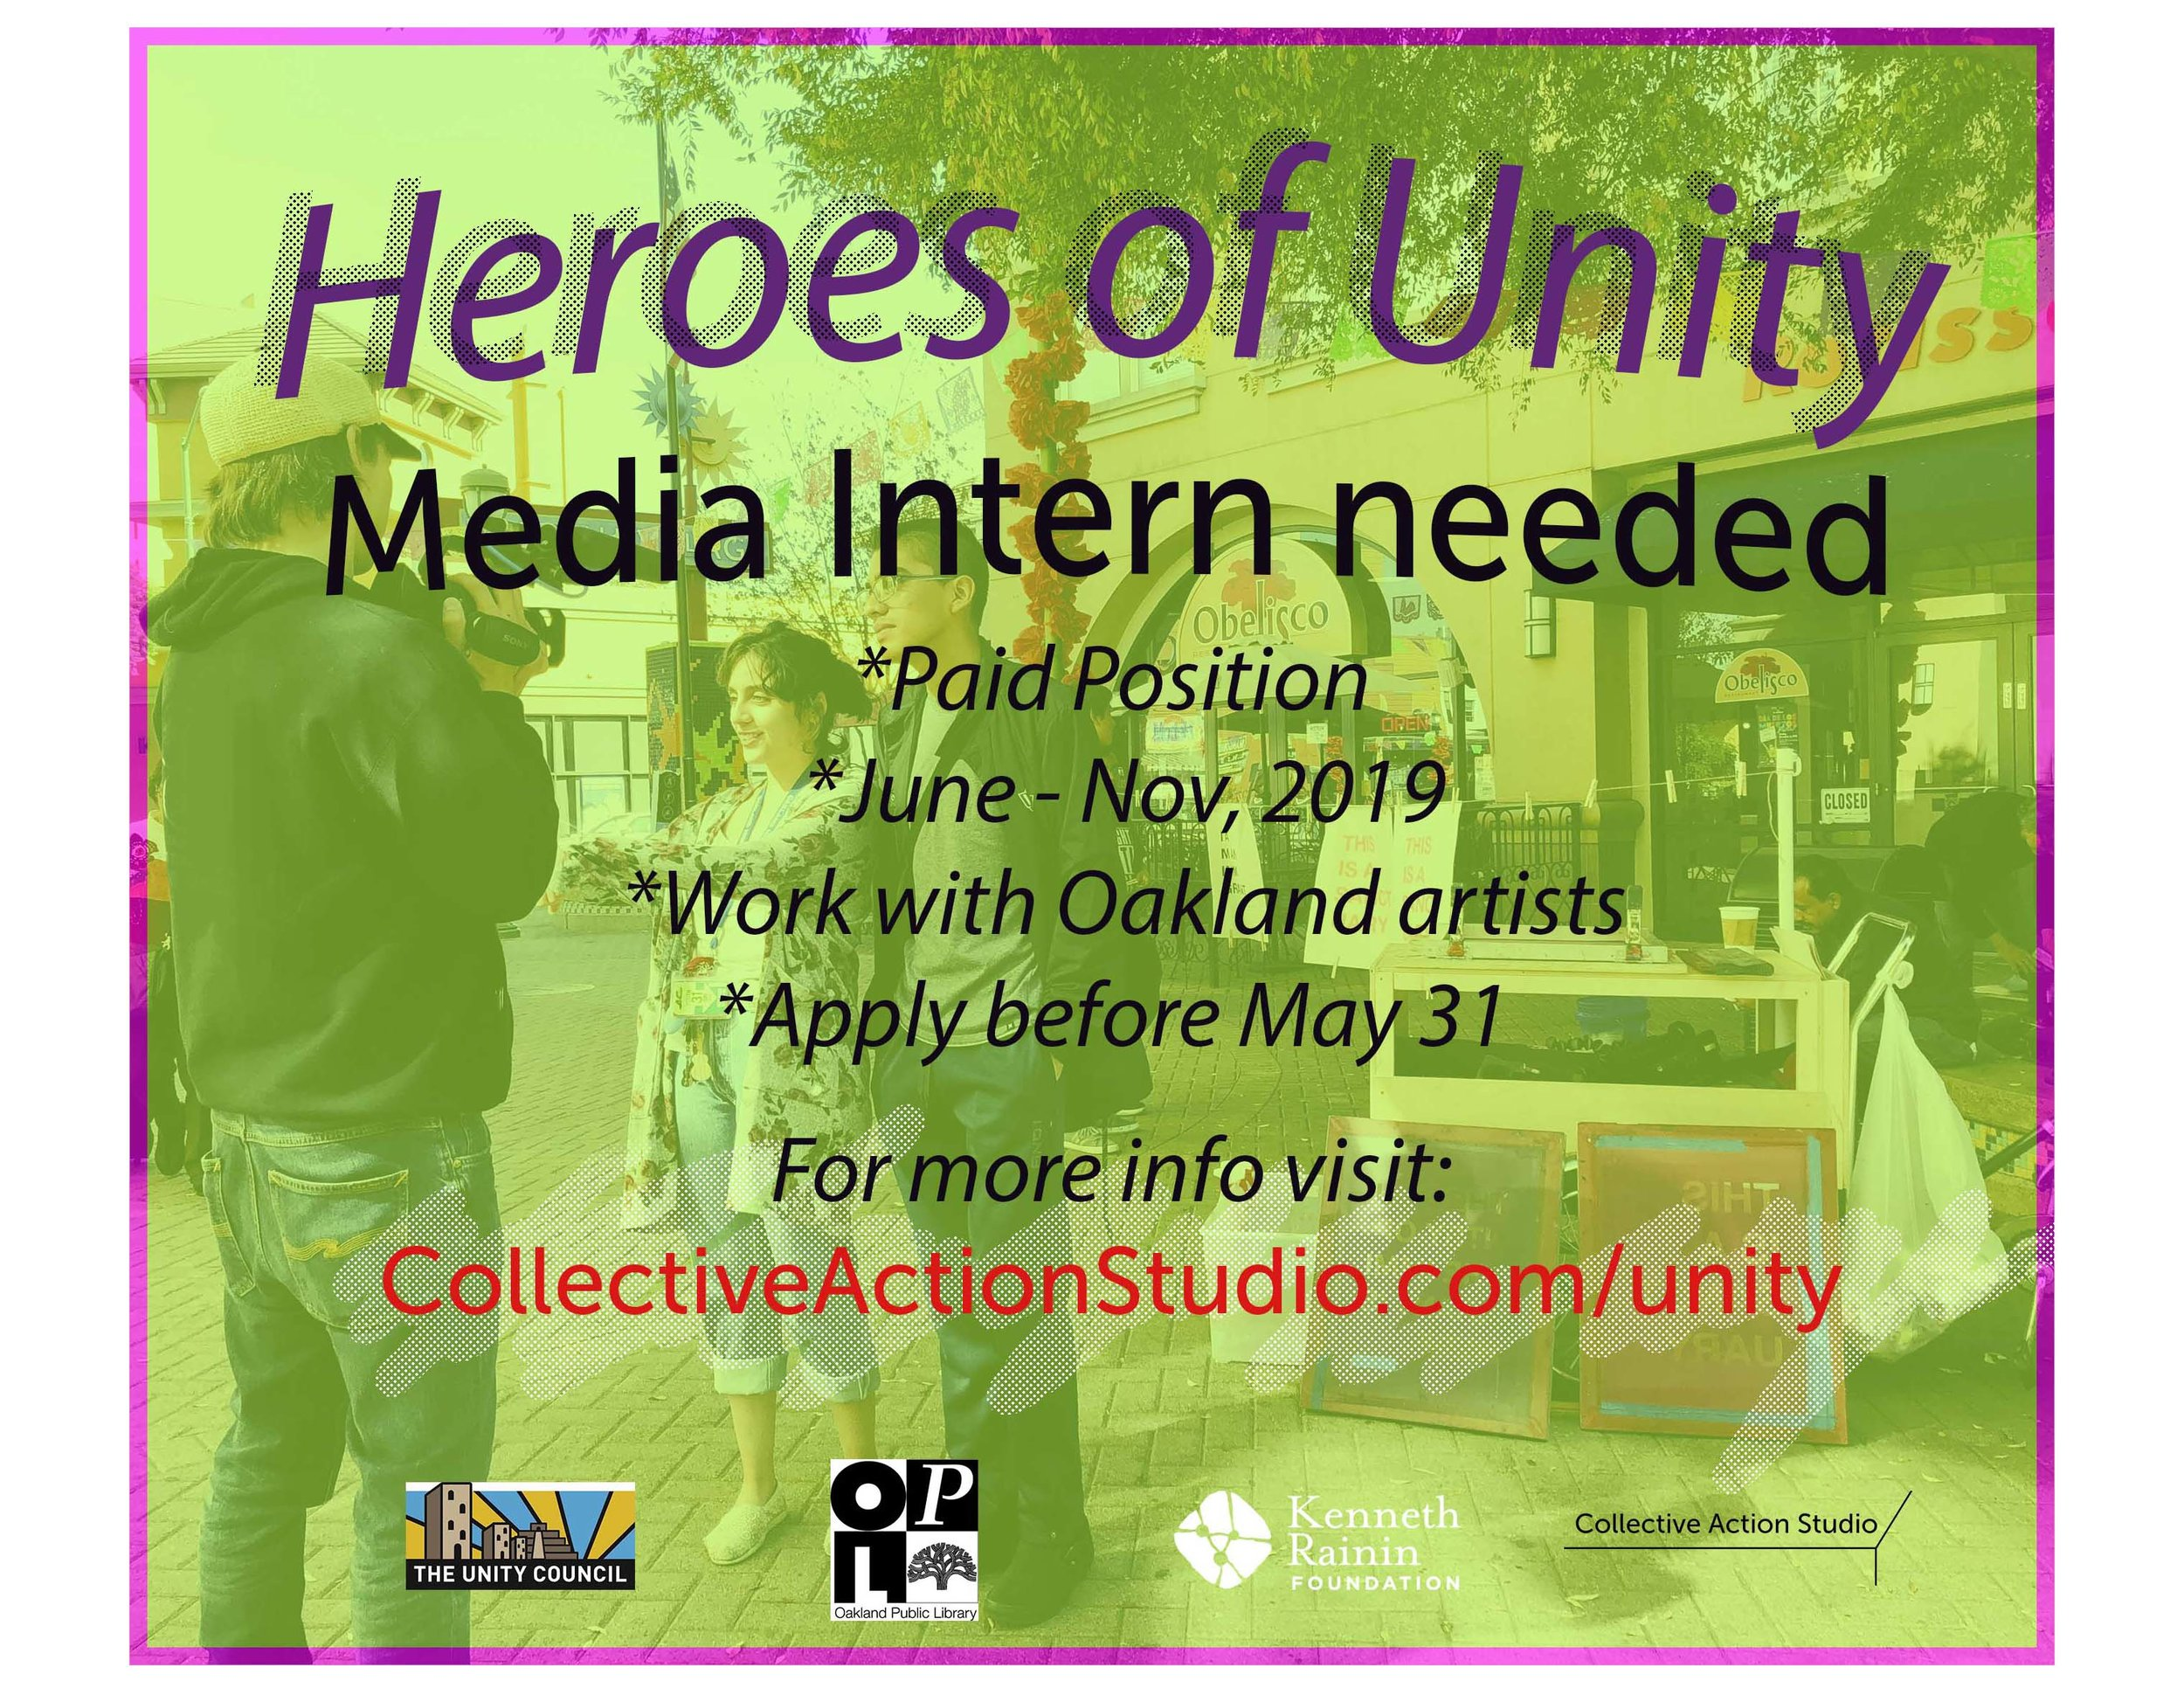 Heroes of Unity Media Intern Instagram Flier Squarespace.jpg